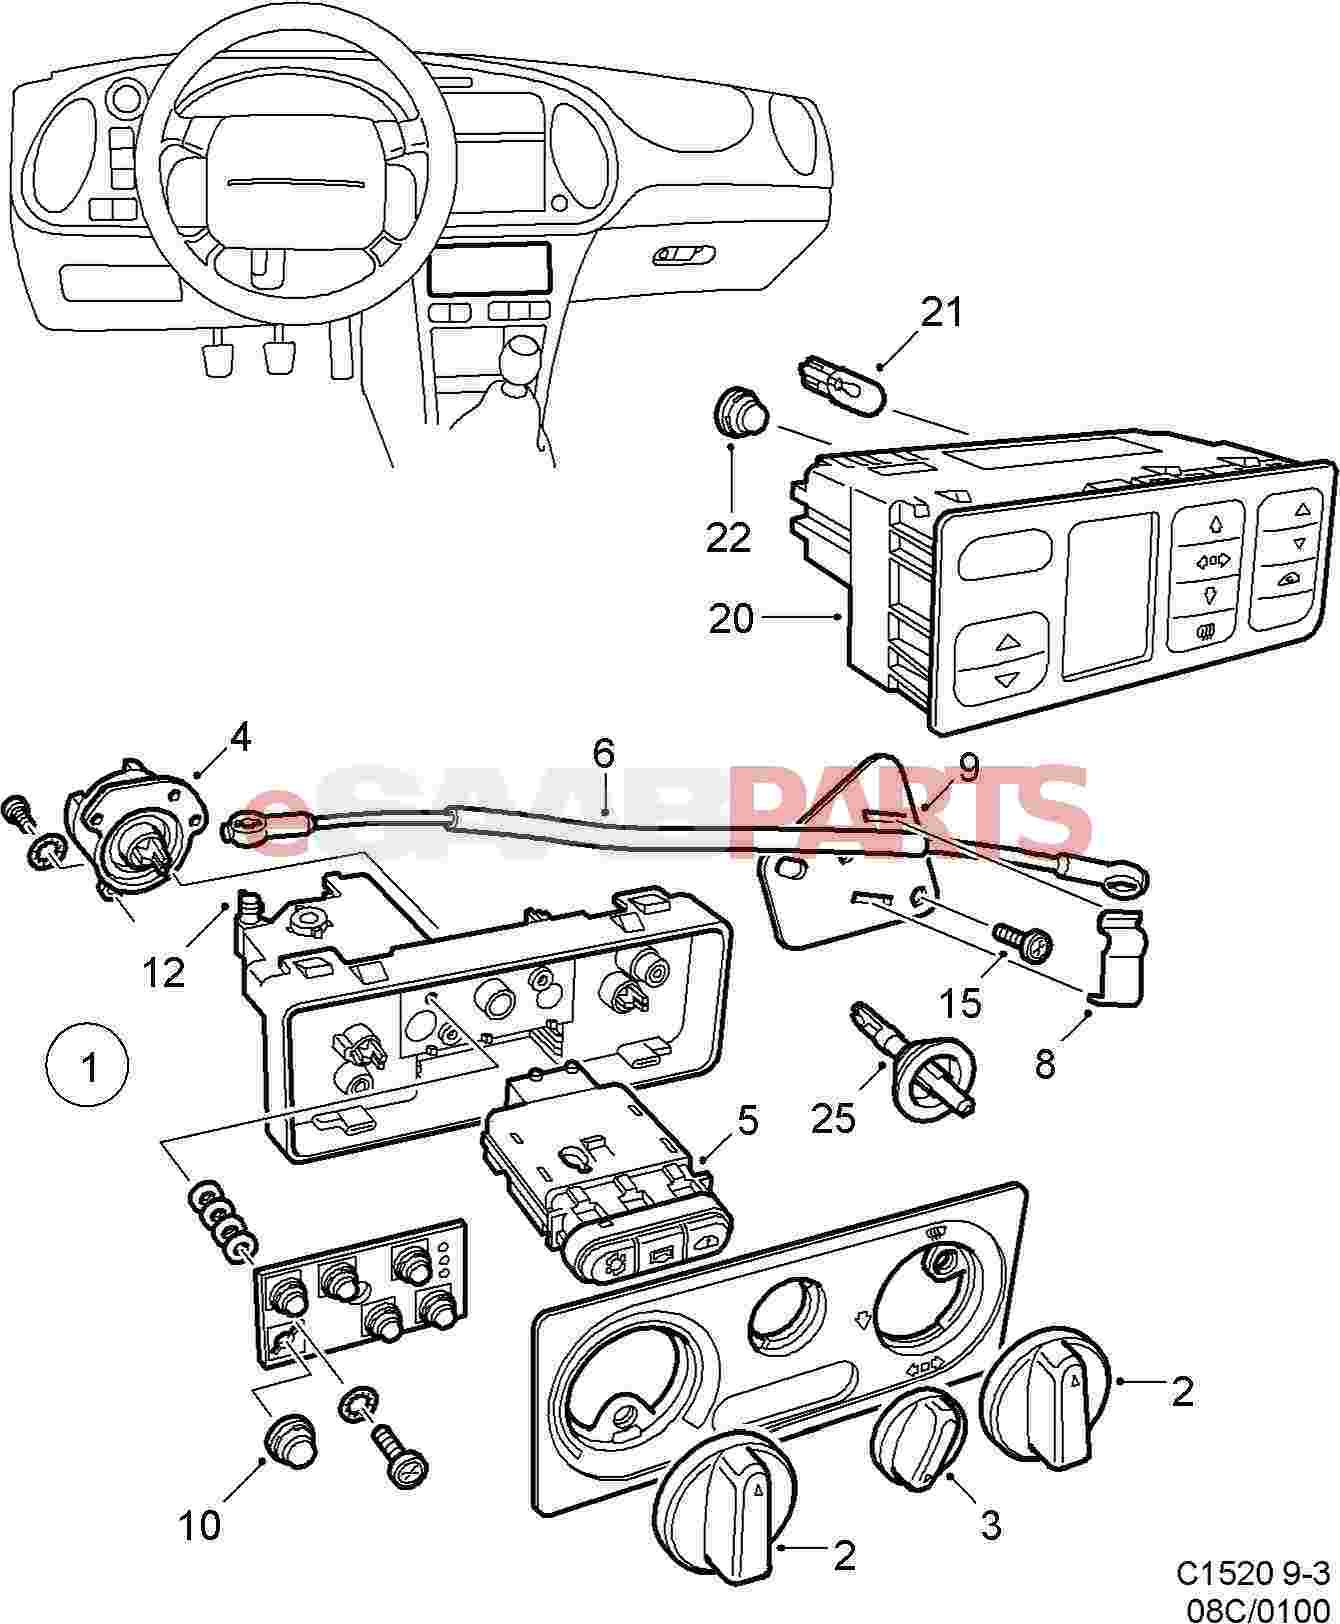 saab 93 heater core diagram